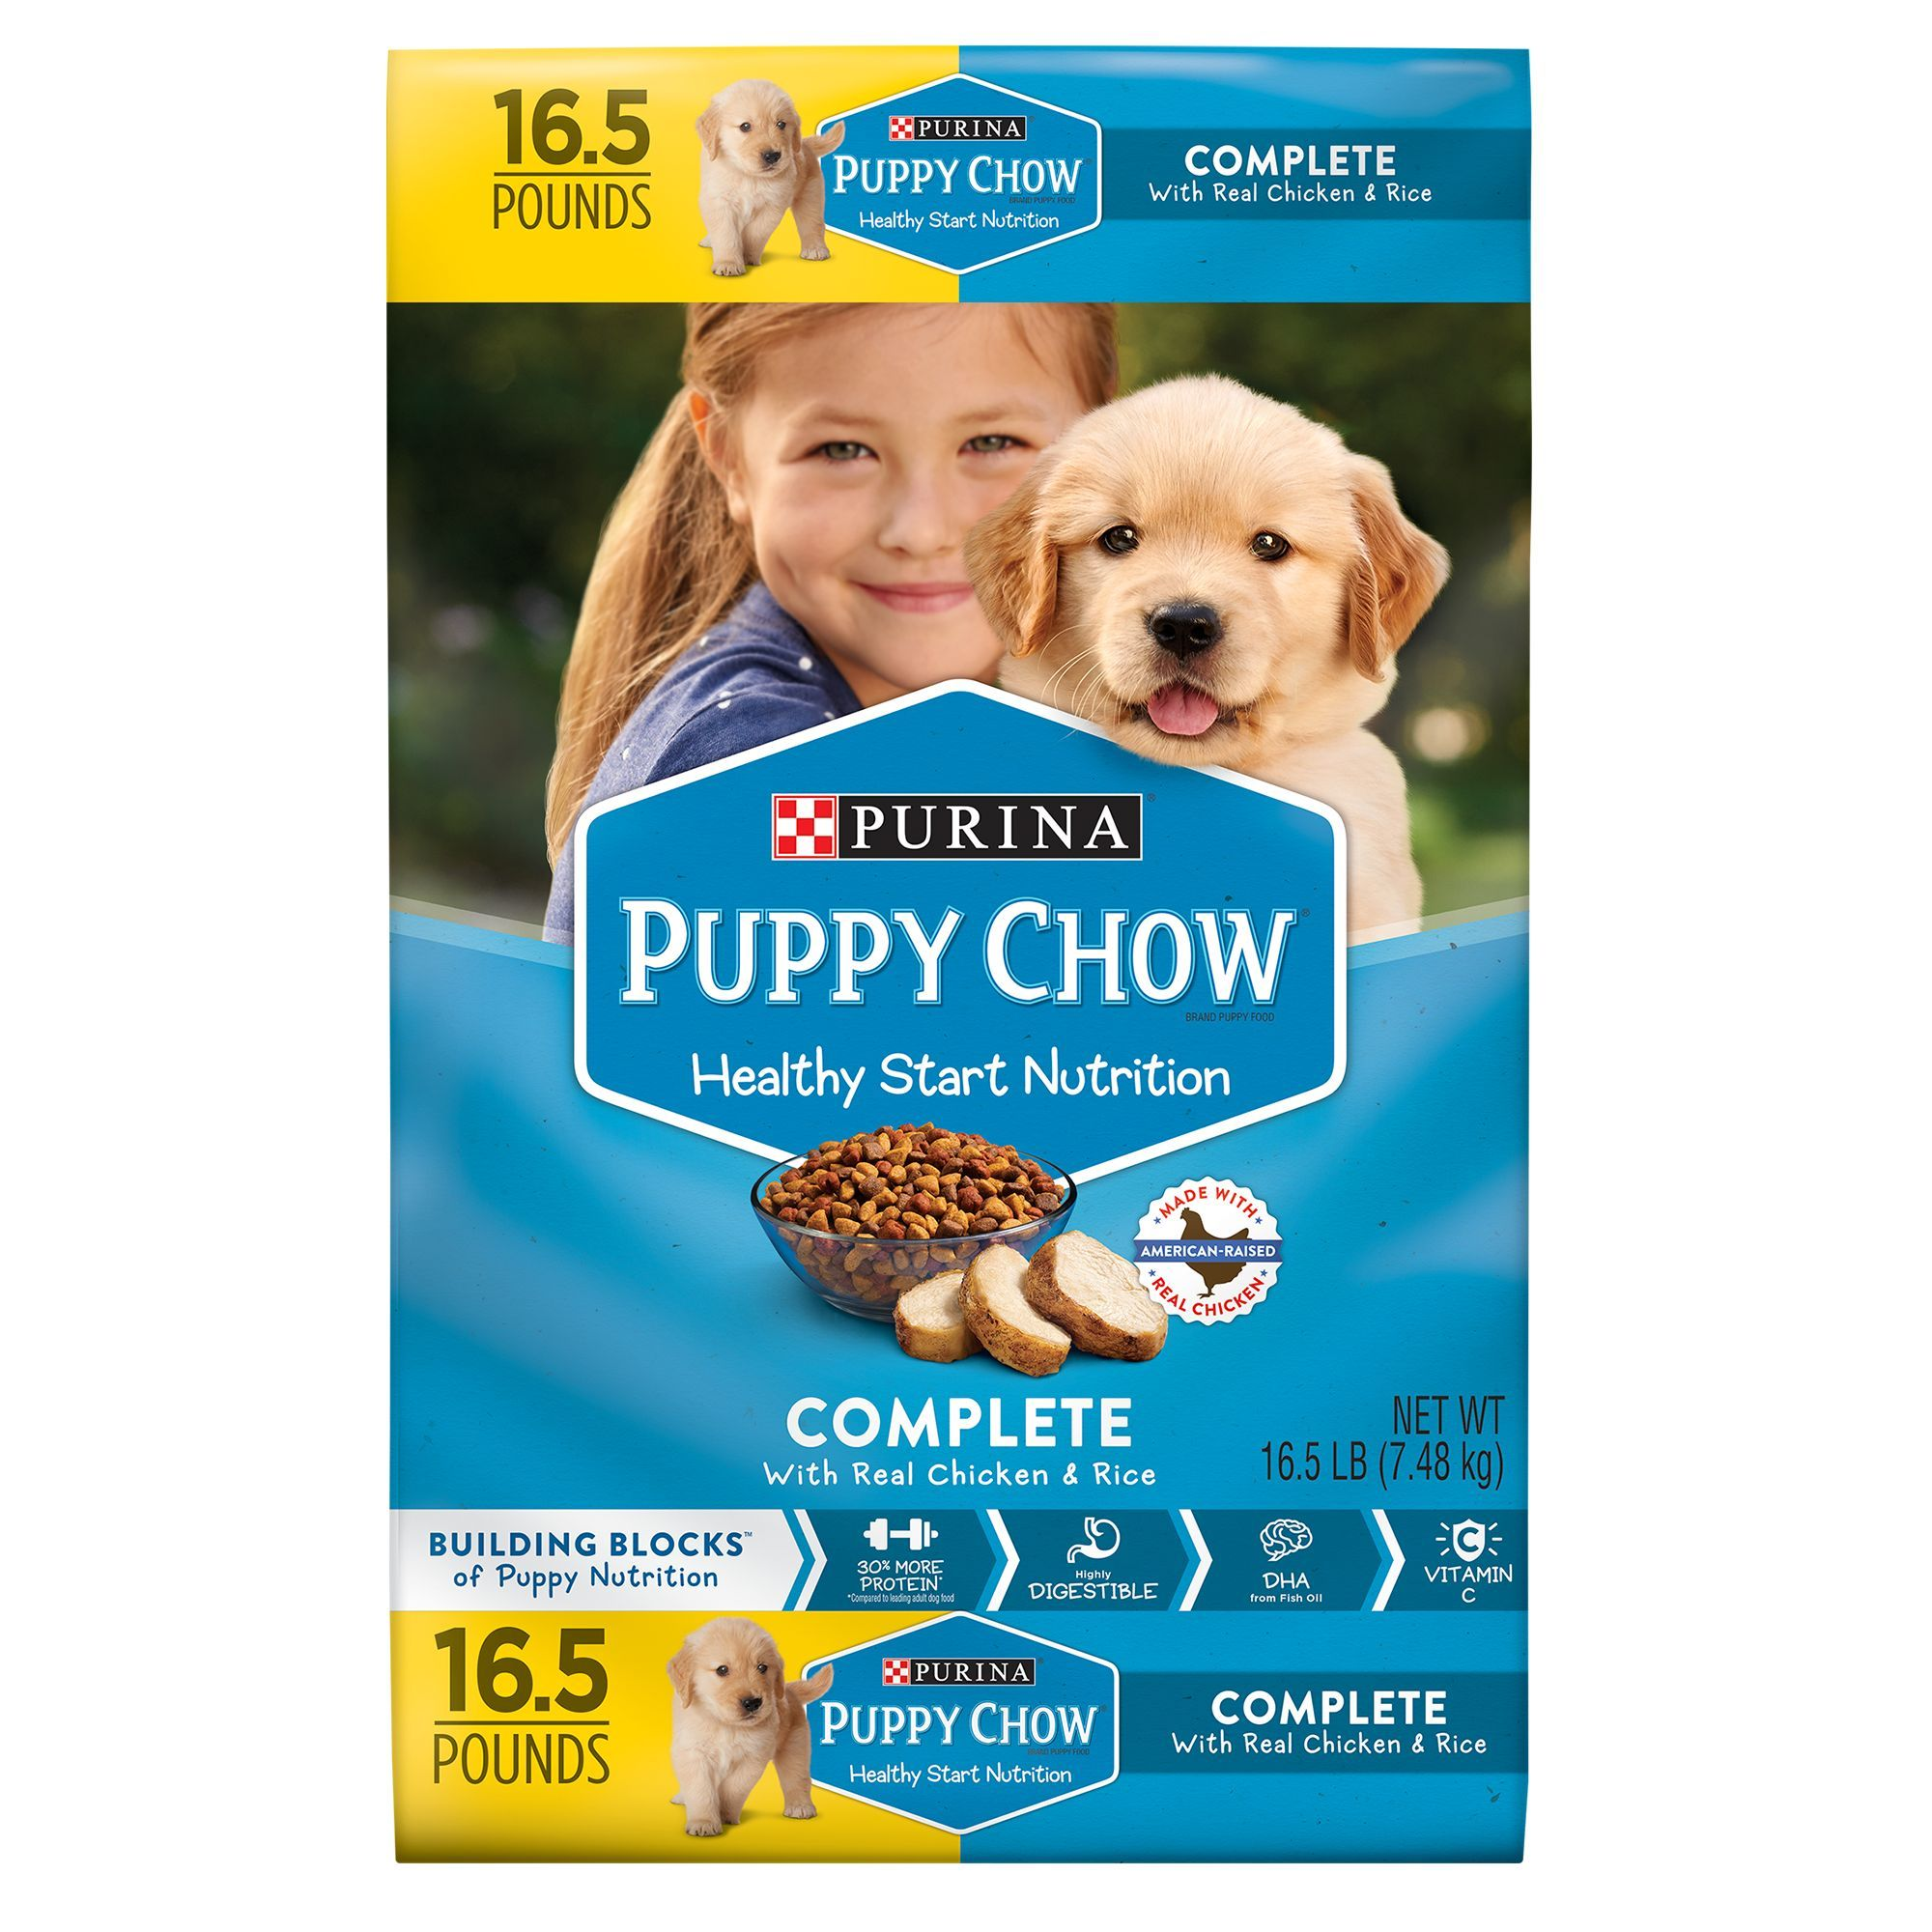 Purina Puppy Chow Complete Puppy Food Chicken Products